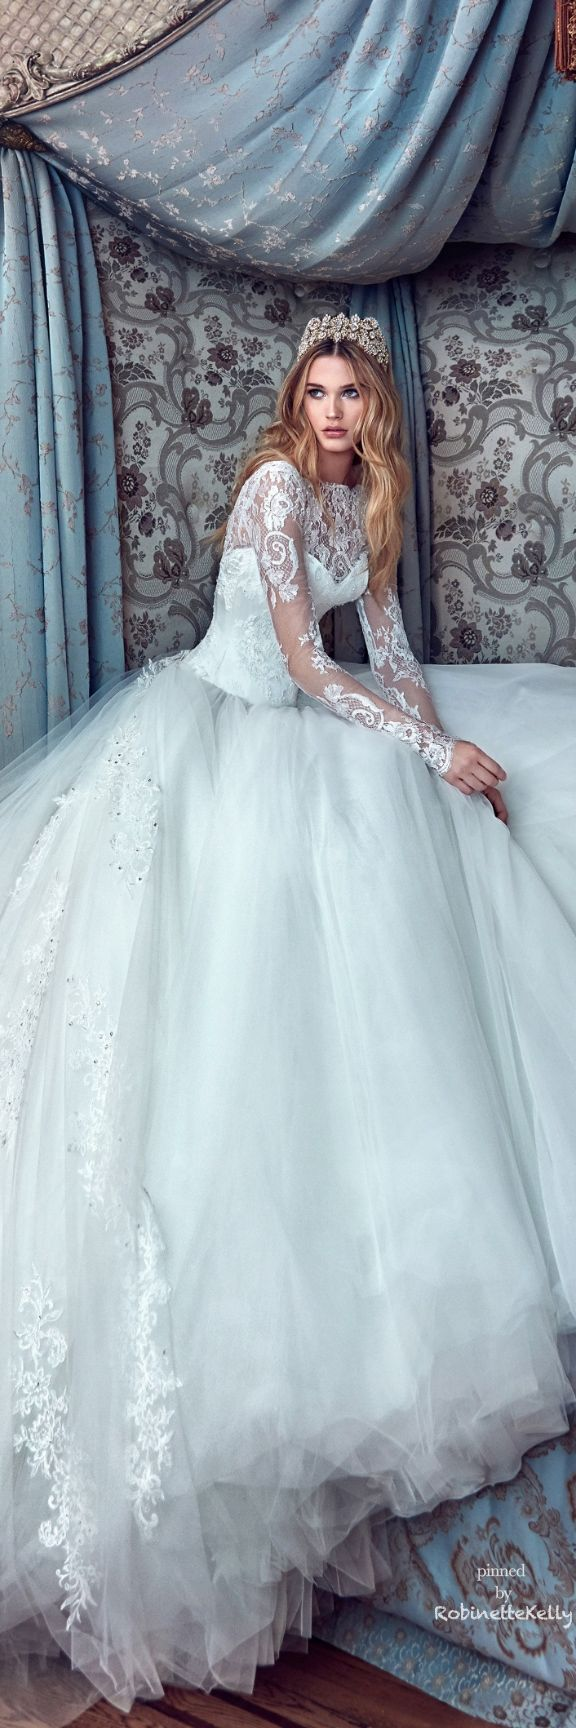 Bridal | Galia Lahav Spring, Summer 'Le Secret Royal' Wedding Collection